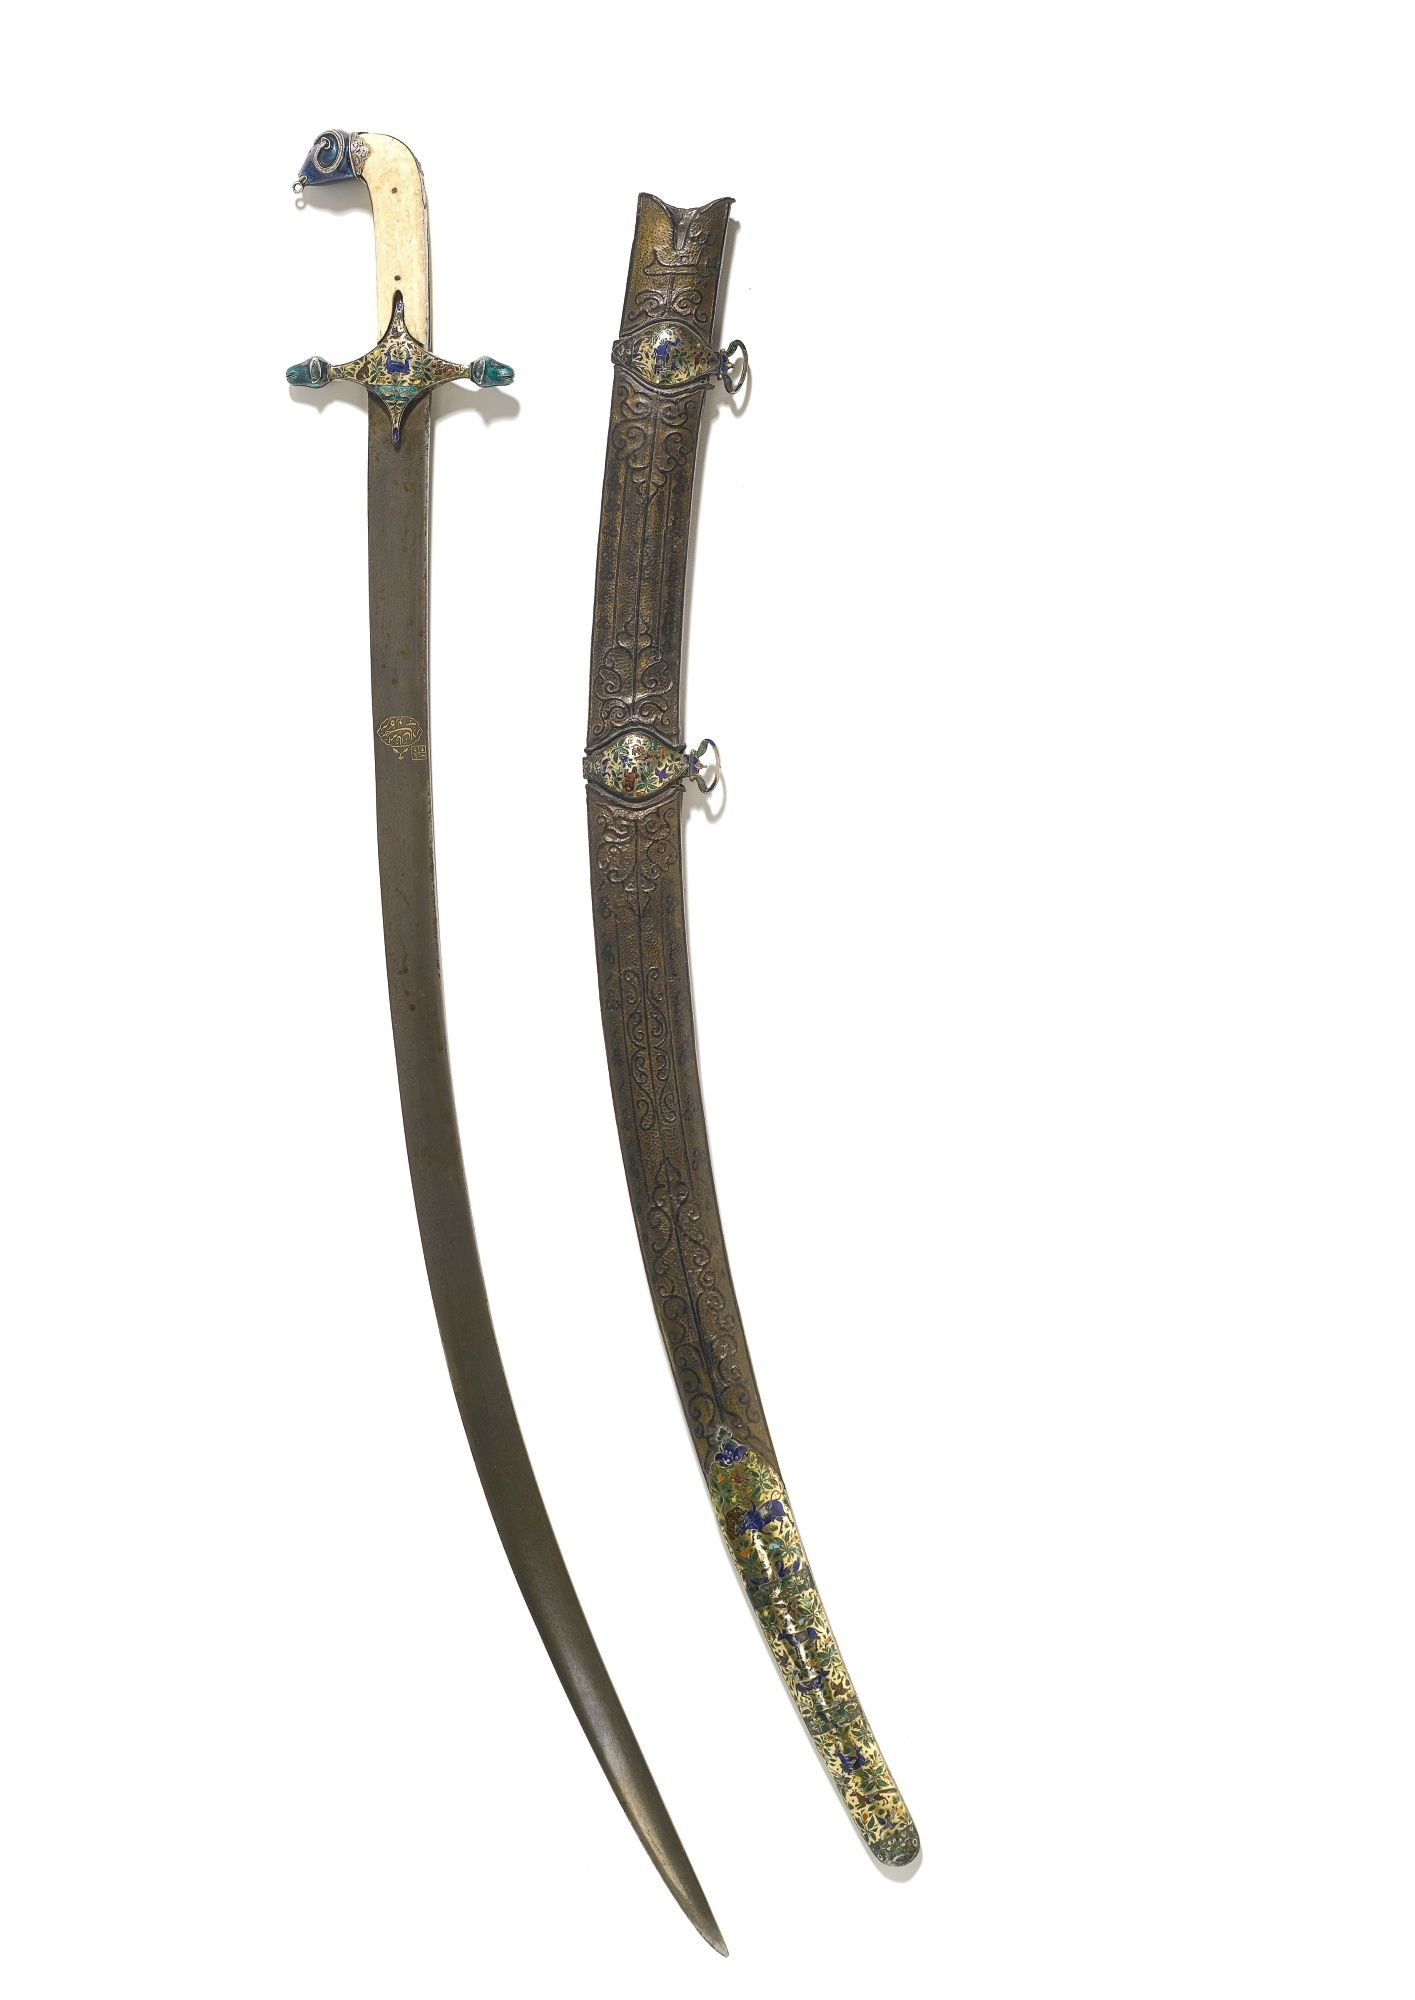 A sword (shamshir) with marine-ivory grips and enamel mounts with leather scabbard, probably Lucknow, late 18th/early 19th century